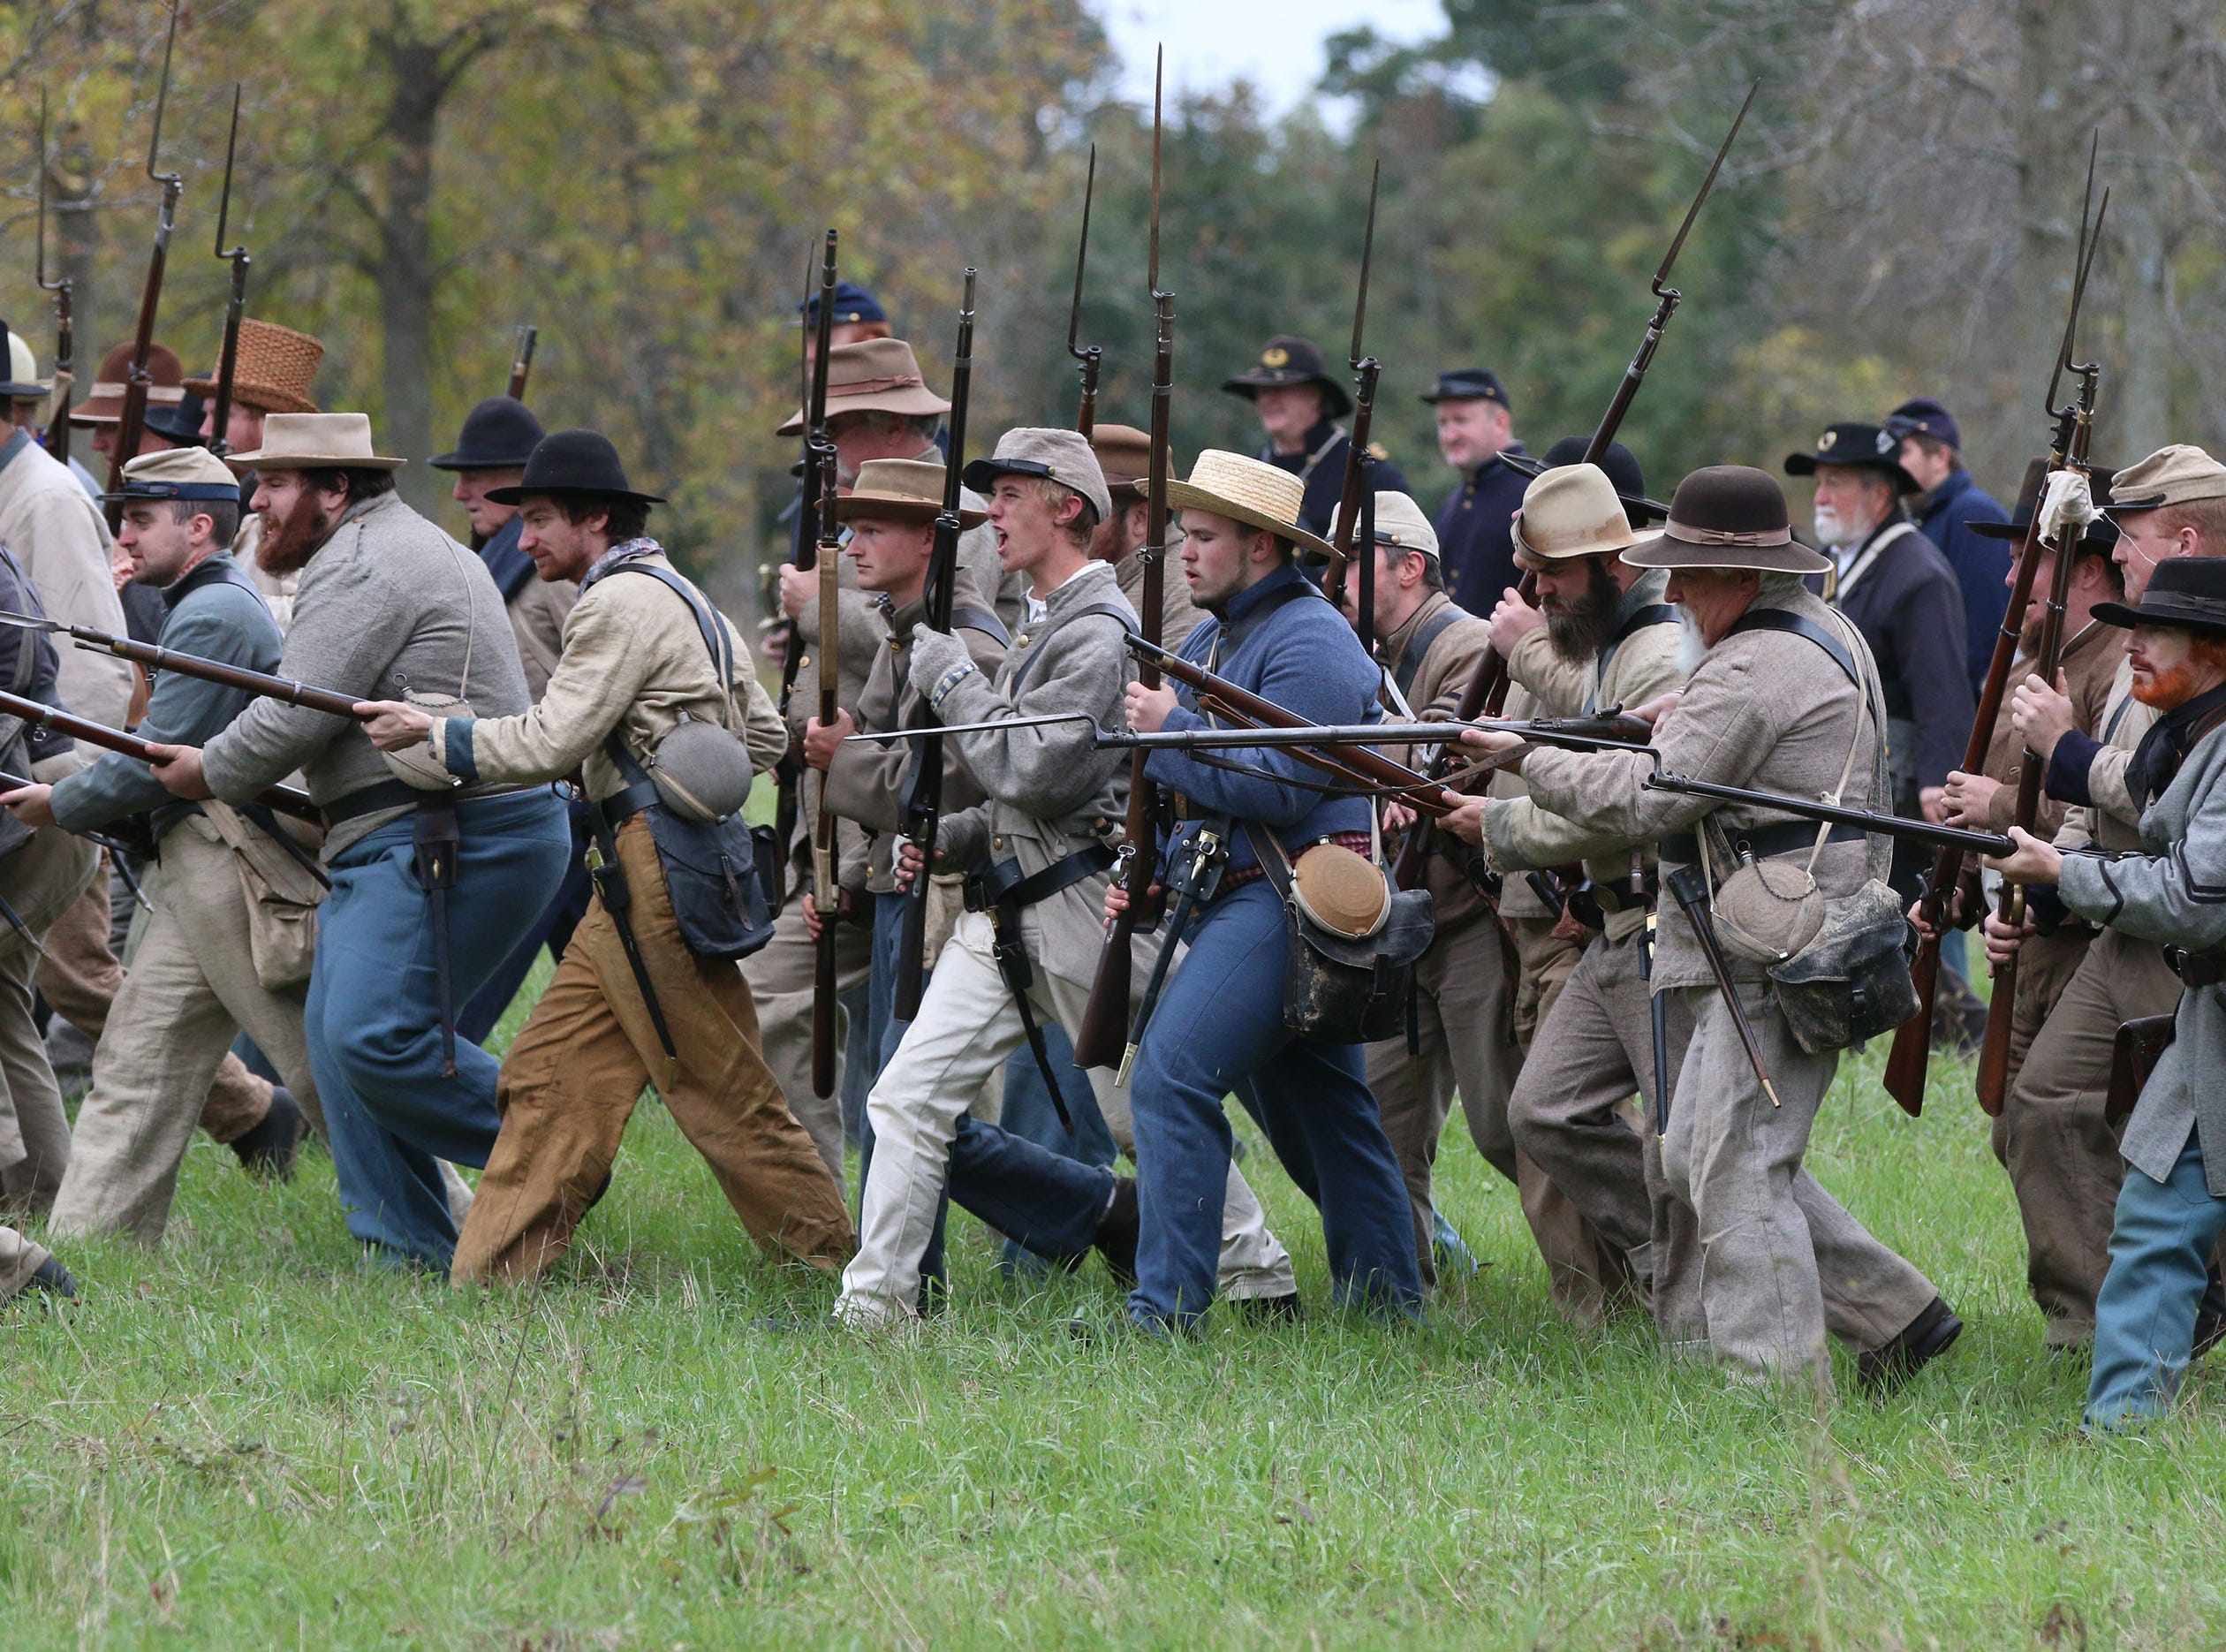 Confederate soldiers charge during the Civil War Weekend at the Wade House, Saturday September 29, 2018, in Greenbush, Wis.